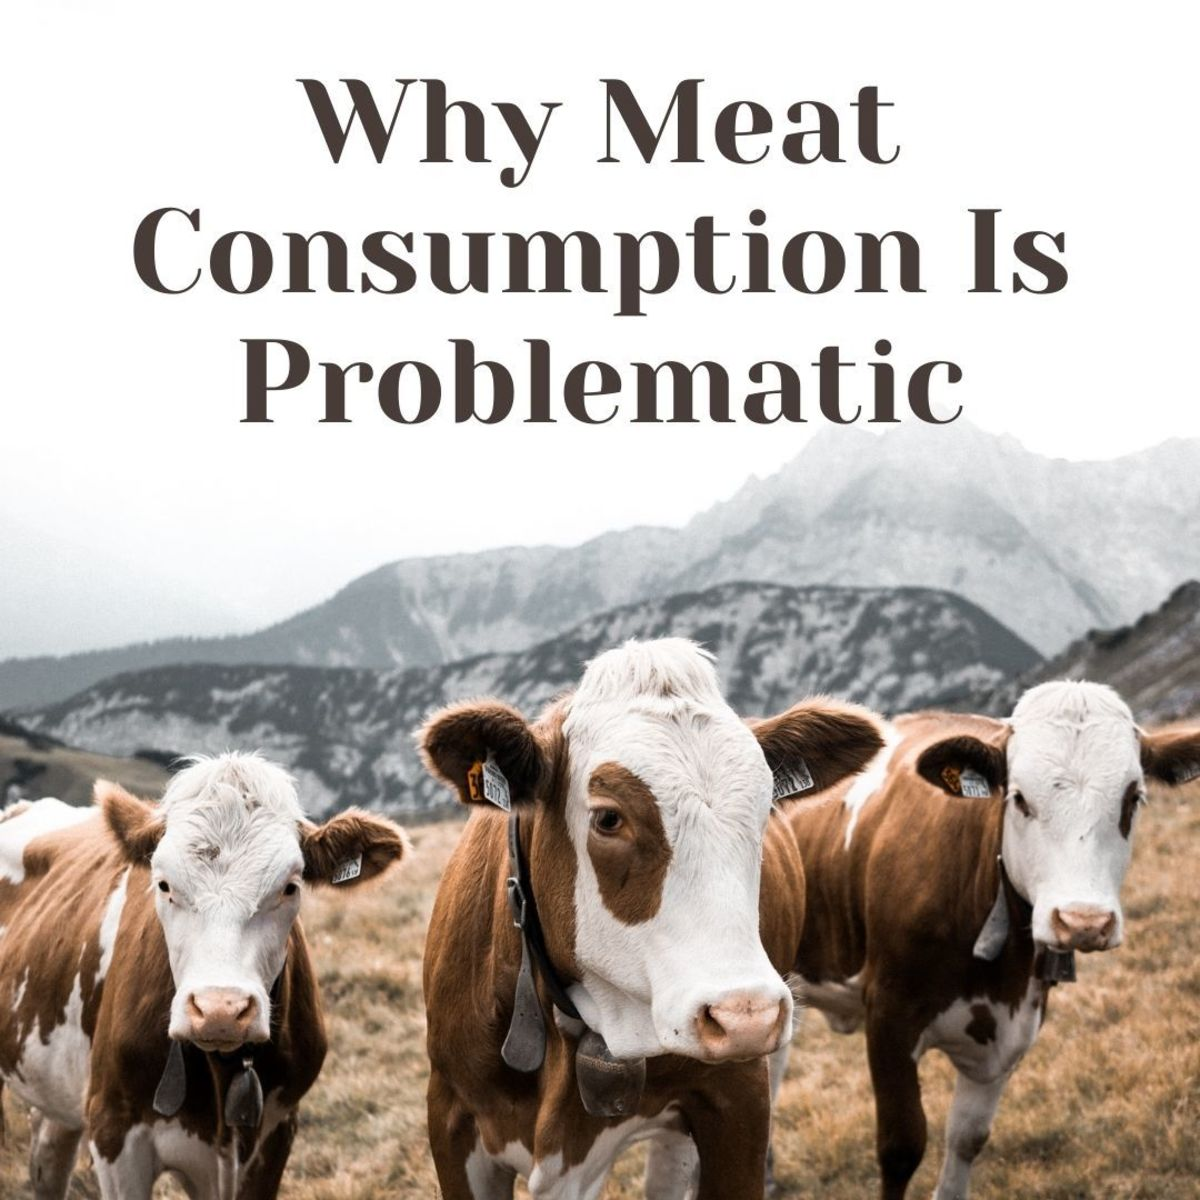 Is Meat Consumption Unethical?